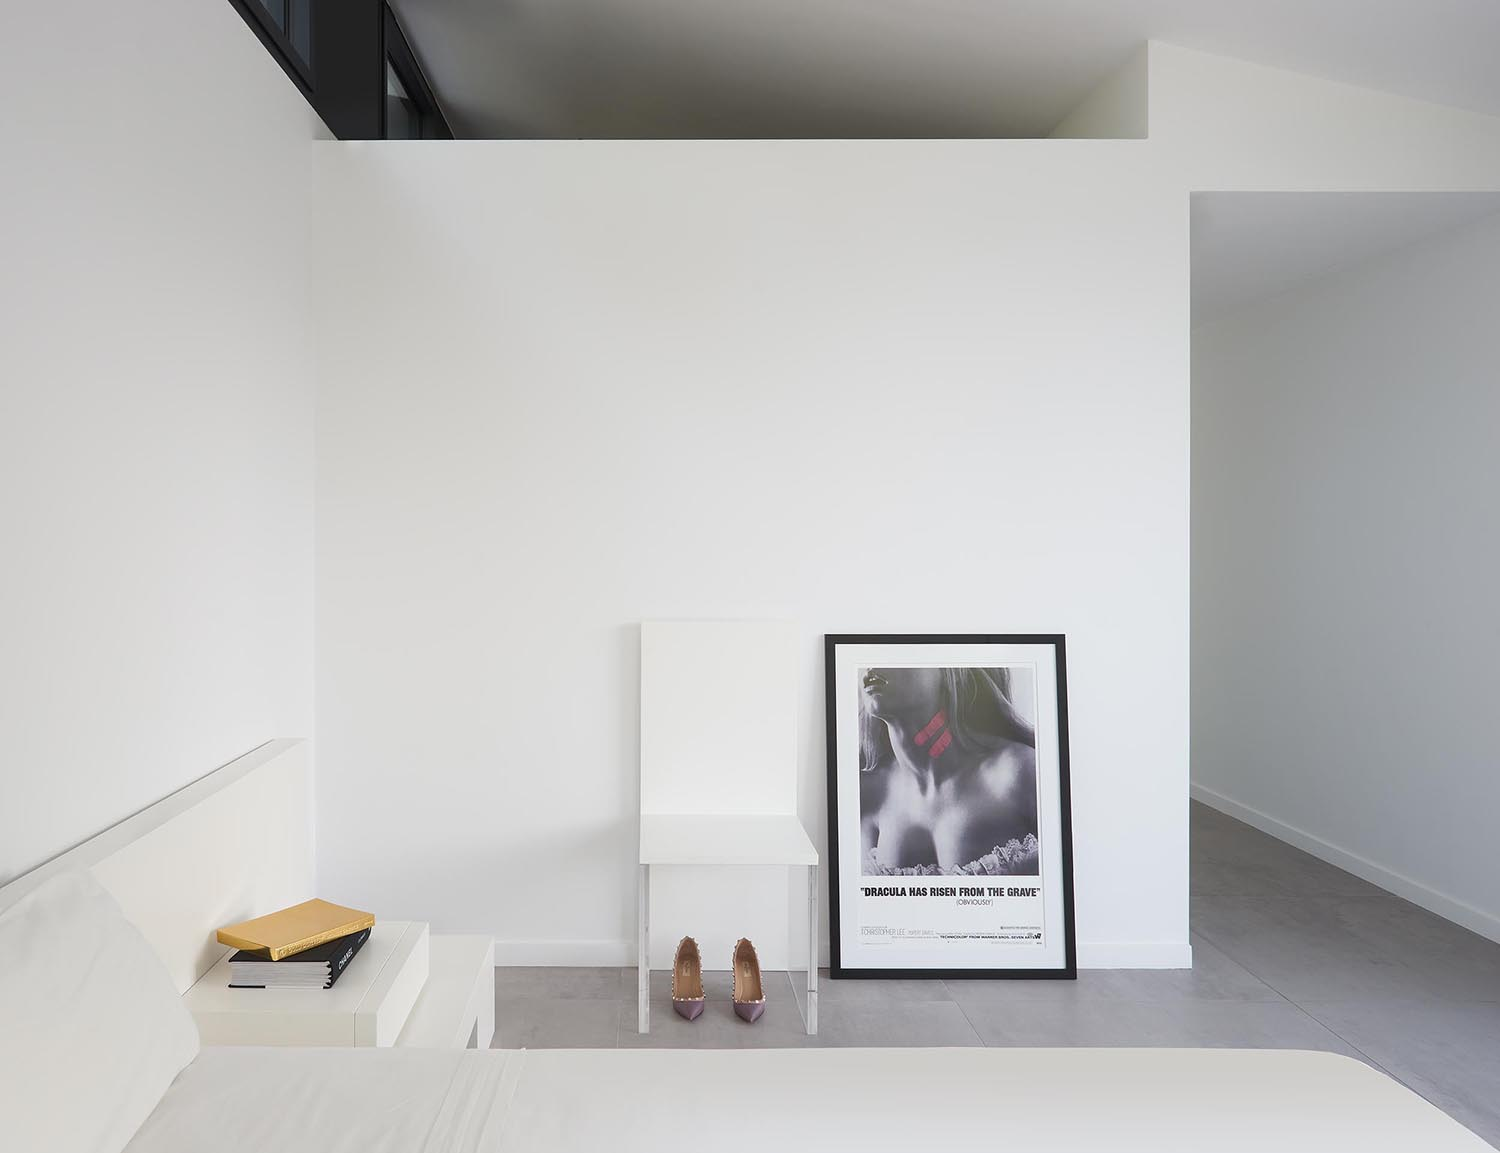 art-sanchez-architecture-interior-design-photography-mallorca-spain-hospitality-minimal-studio-gv13-11.jpg